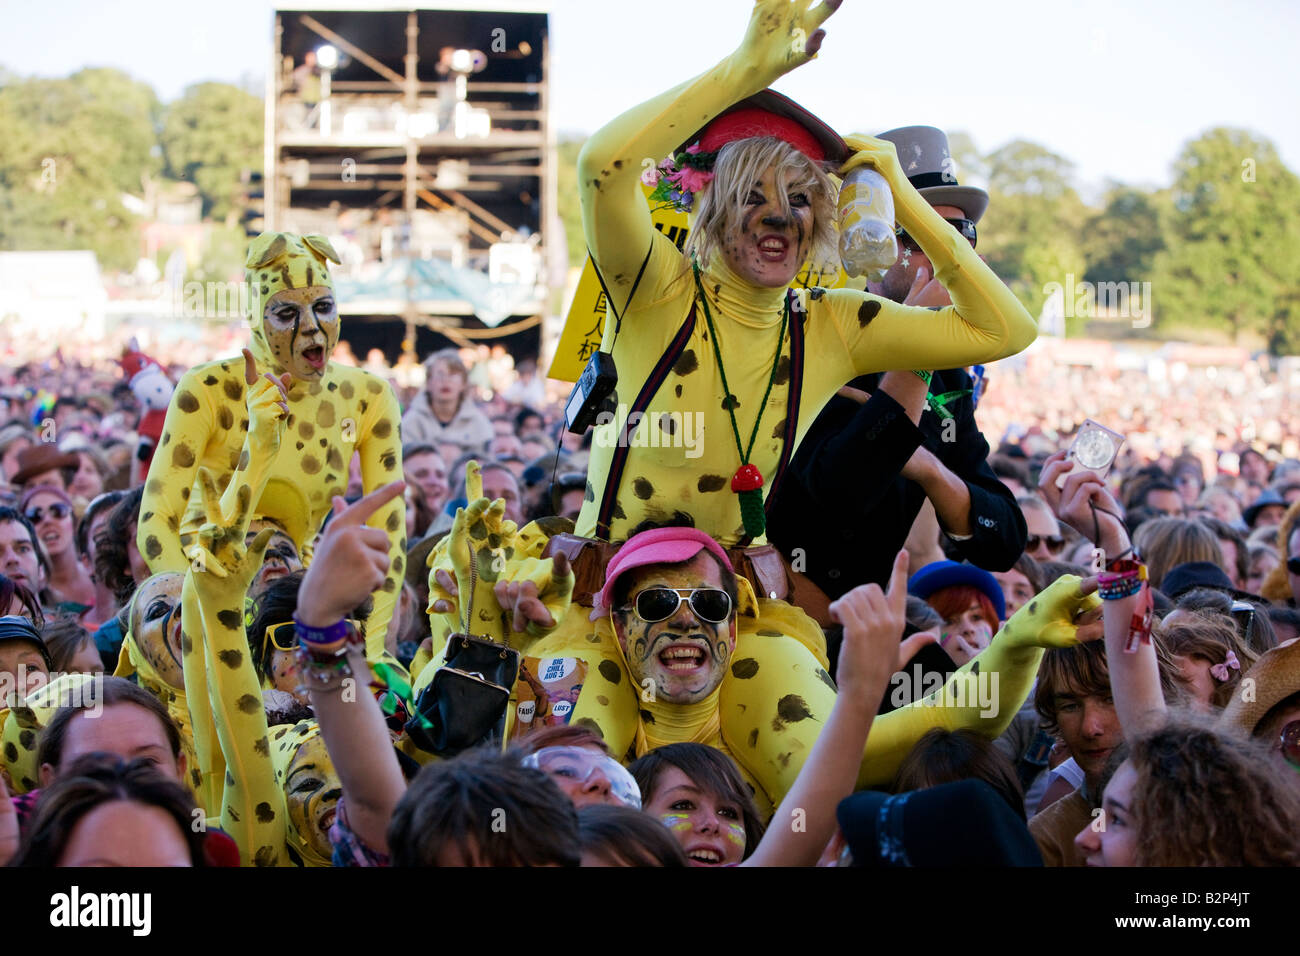 A section of the crowd watching The Mighty Boosh perform live at The Big Chill Festival 2008 at Eastnor Castle, - Stock Image